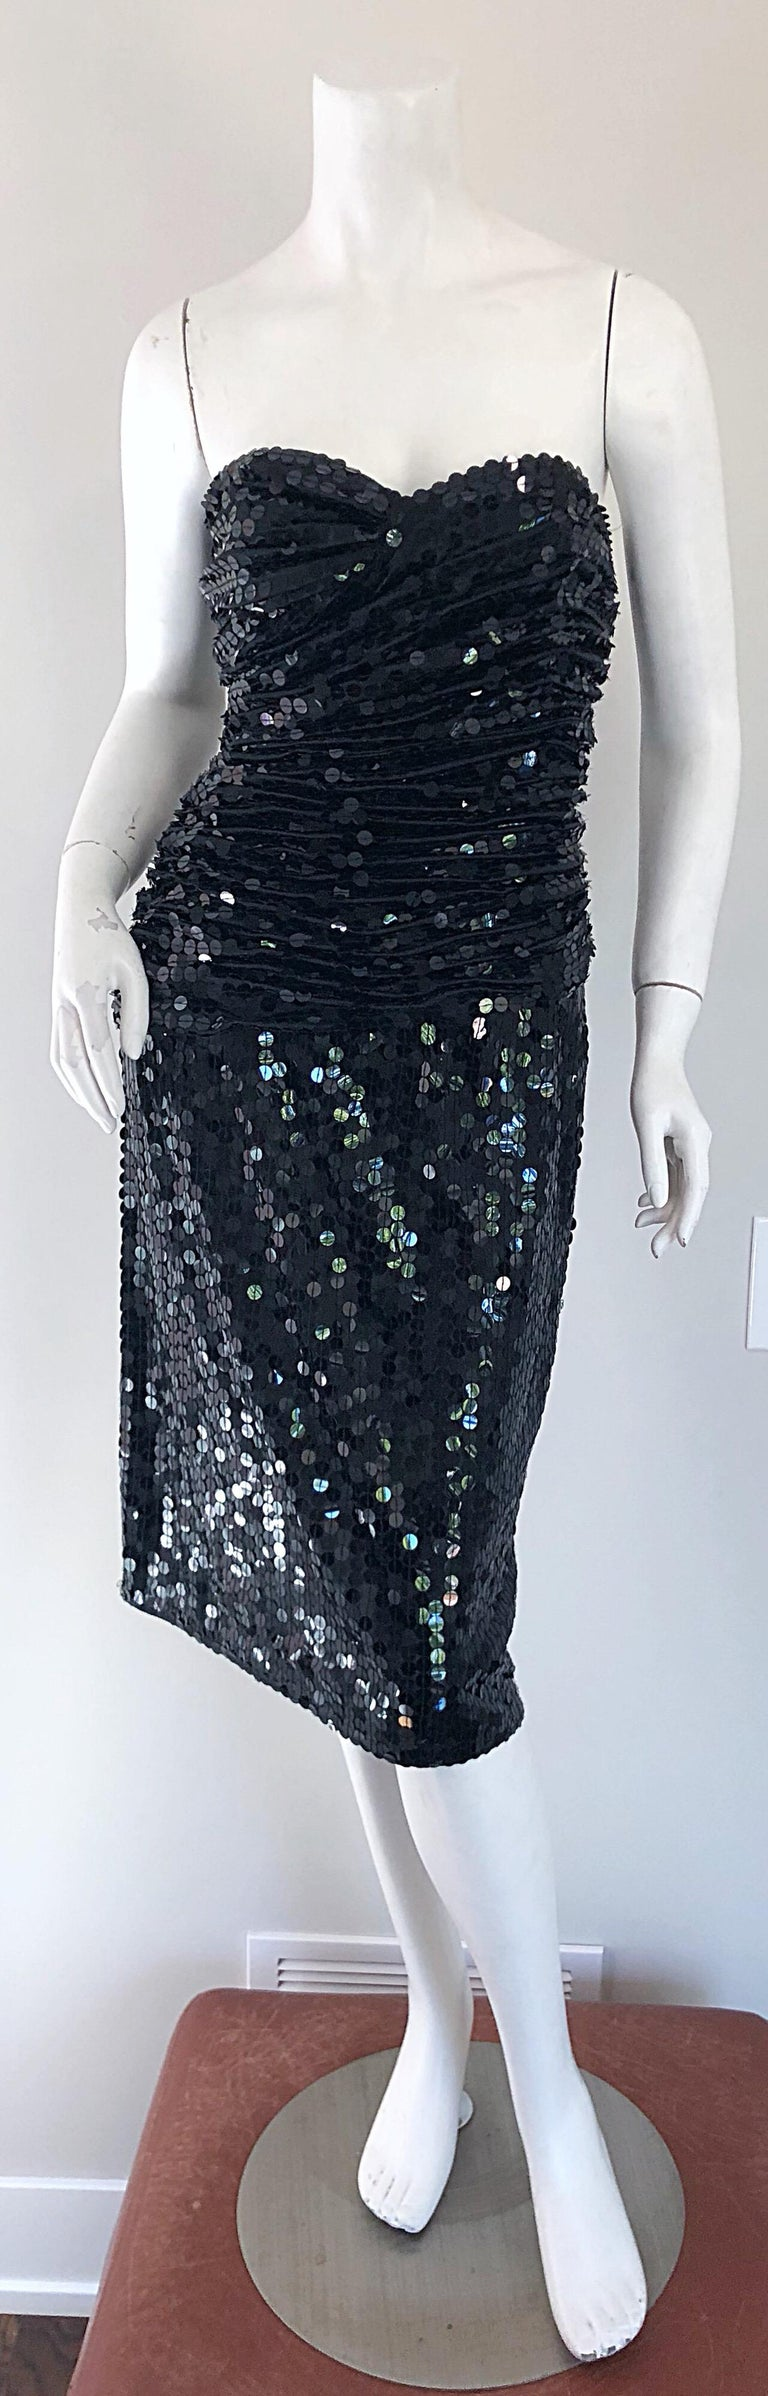 Stunning vintage VICKY TIEL COUTURE black silk strapless cocktail dress! Features thousands of hand-sewn black sequins throughout. Flattering ruched boned bodice offers plenty of stretch. Flirty skirt is perfect for dancing! Hidden zipper up the